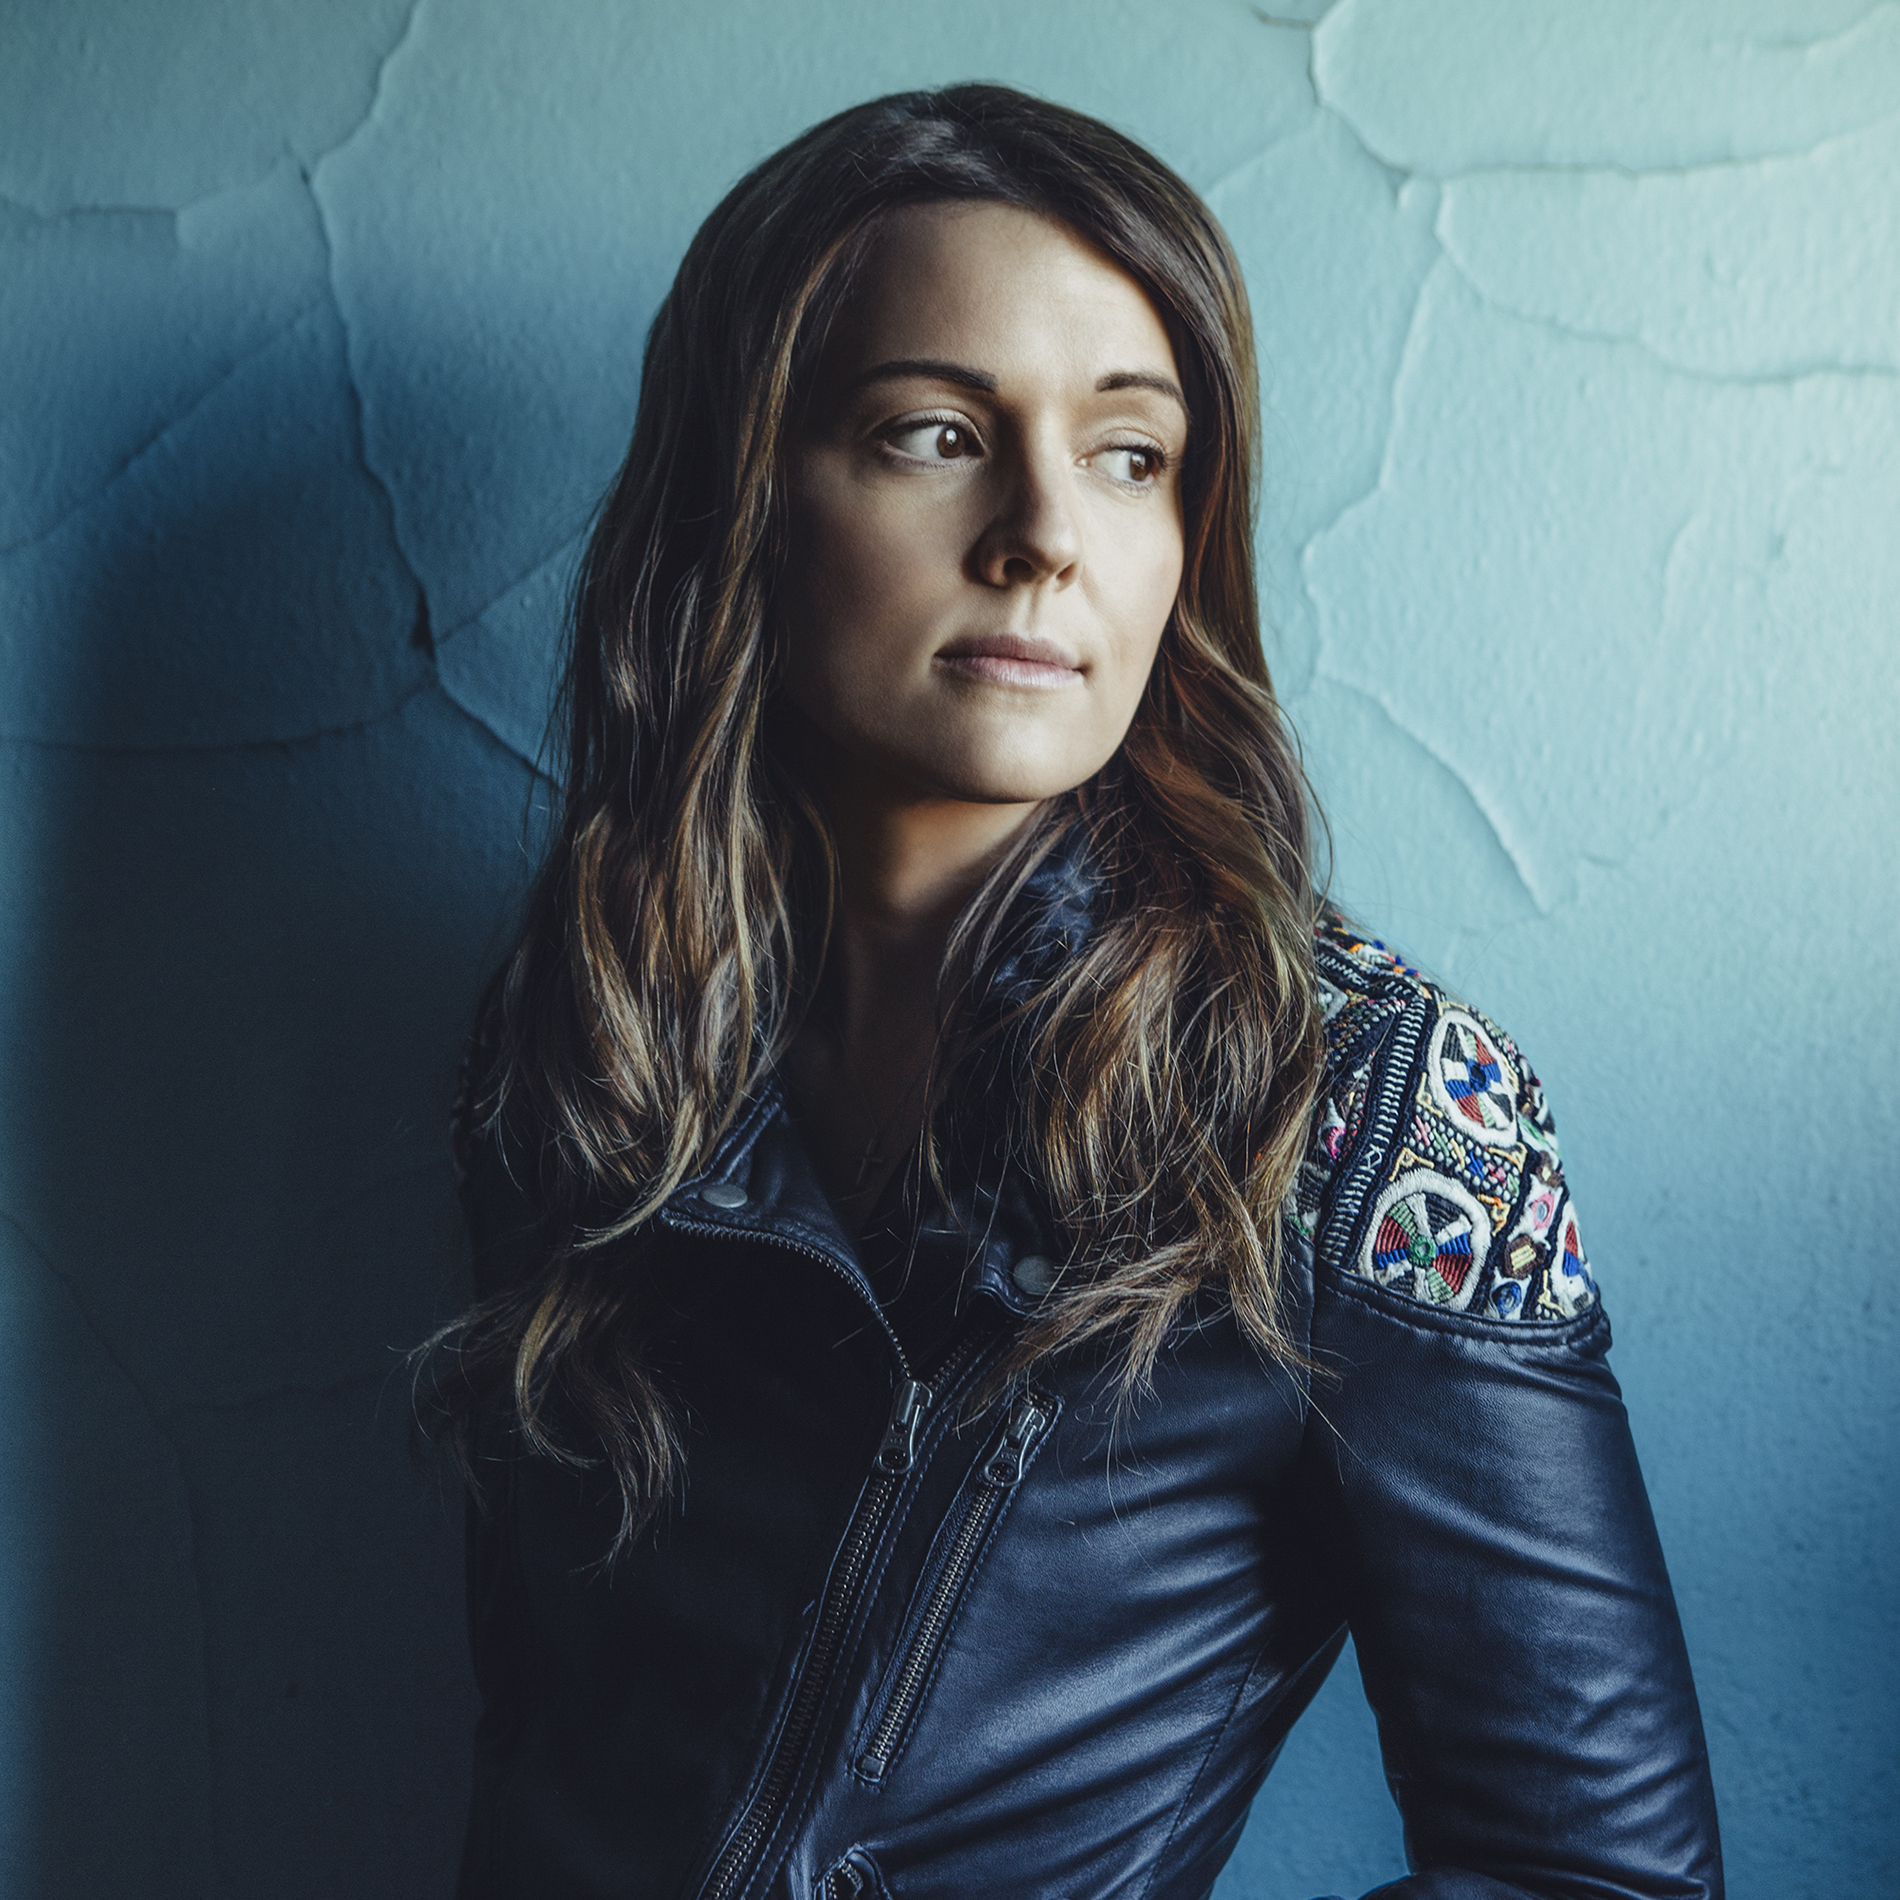 Caption: Brandi Carlile